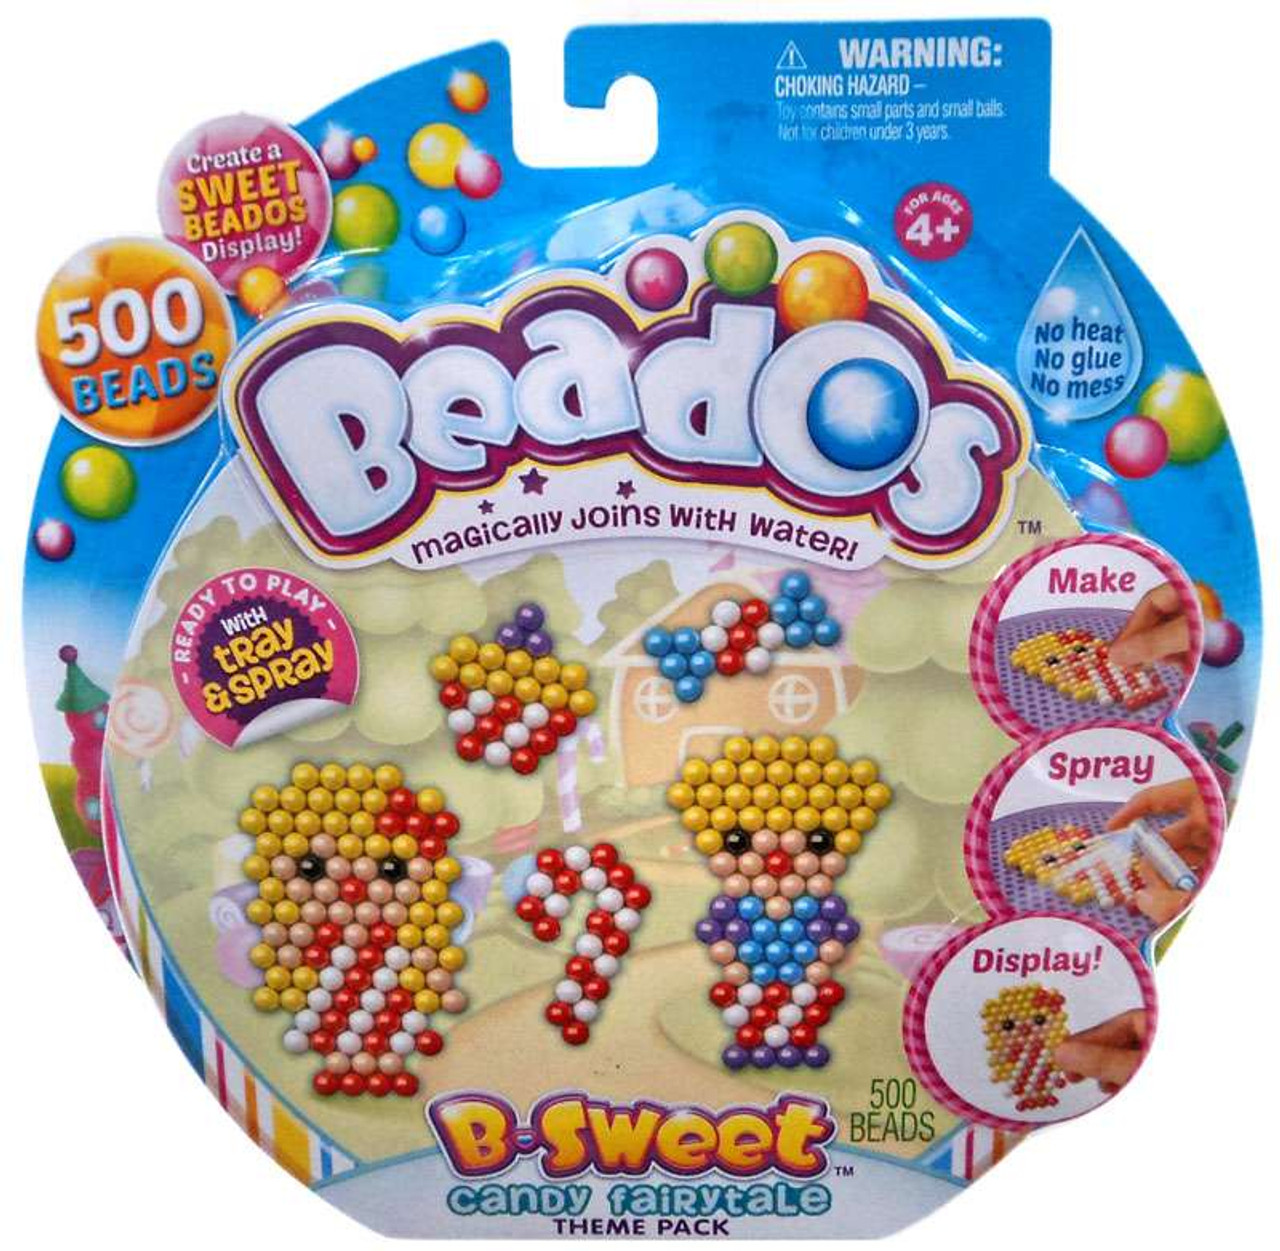 Beados B-Sweet Candy Fairytale Theme Pack